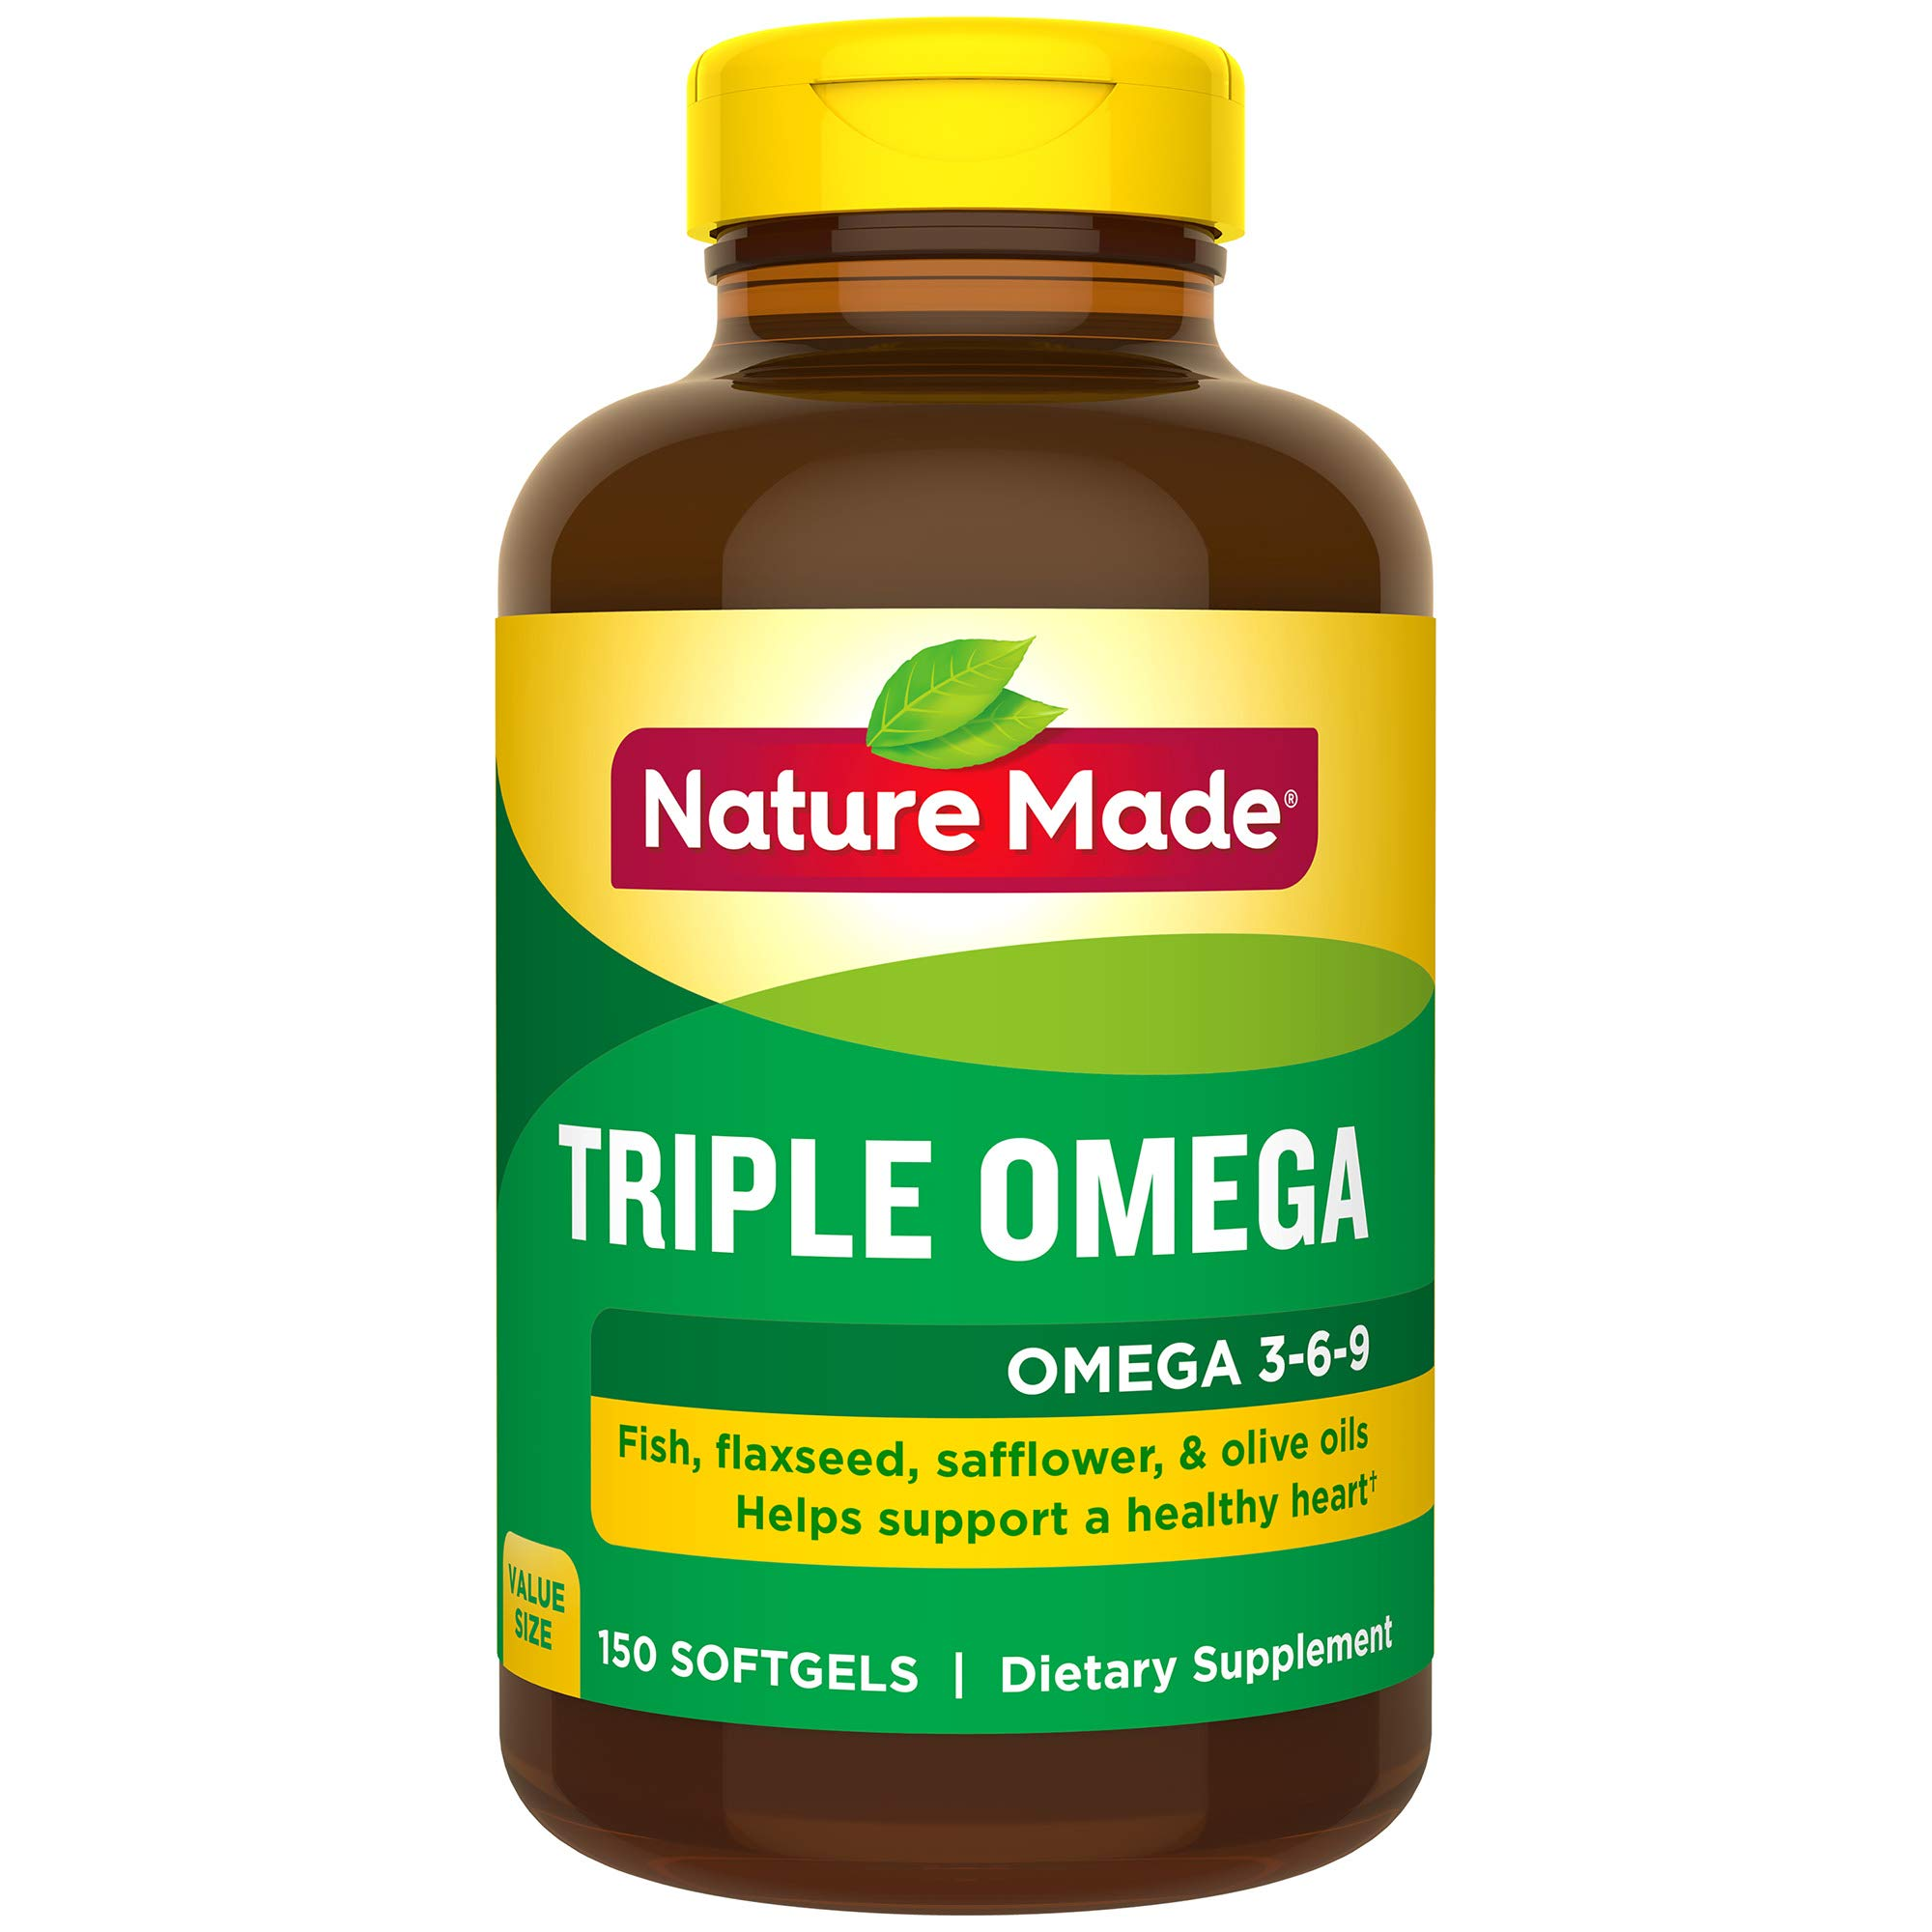 Nature Made Triple Omega 3-6-9 Softgels, 150 Count Value Size for Heart Health† (Packaging May Vary) by Nature Made